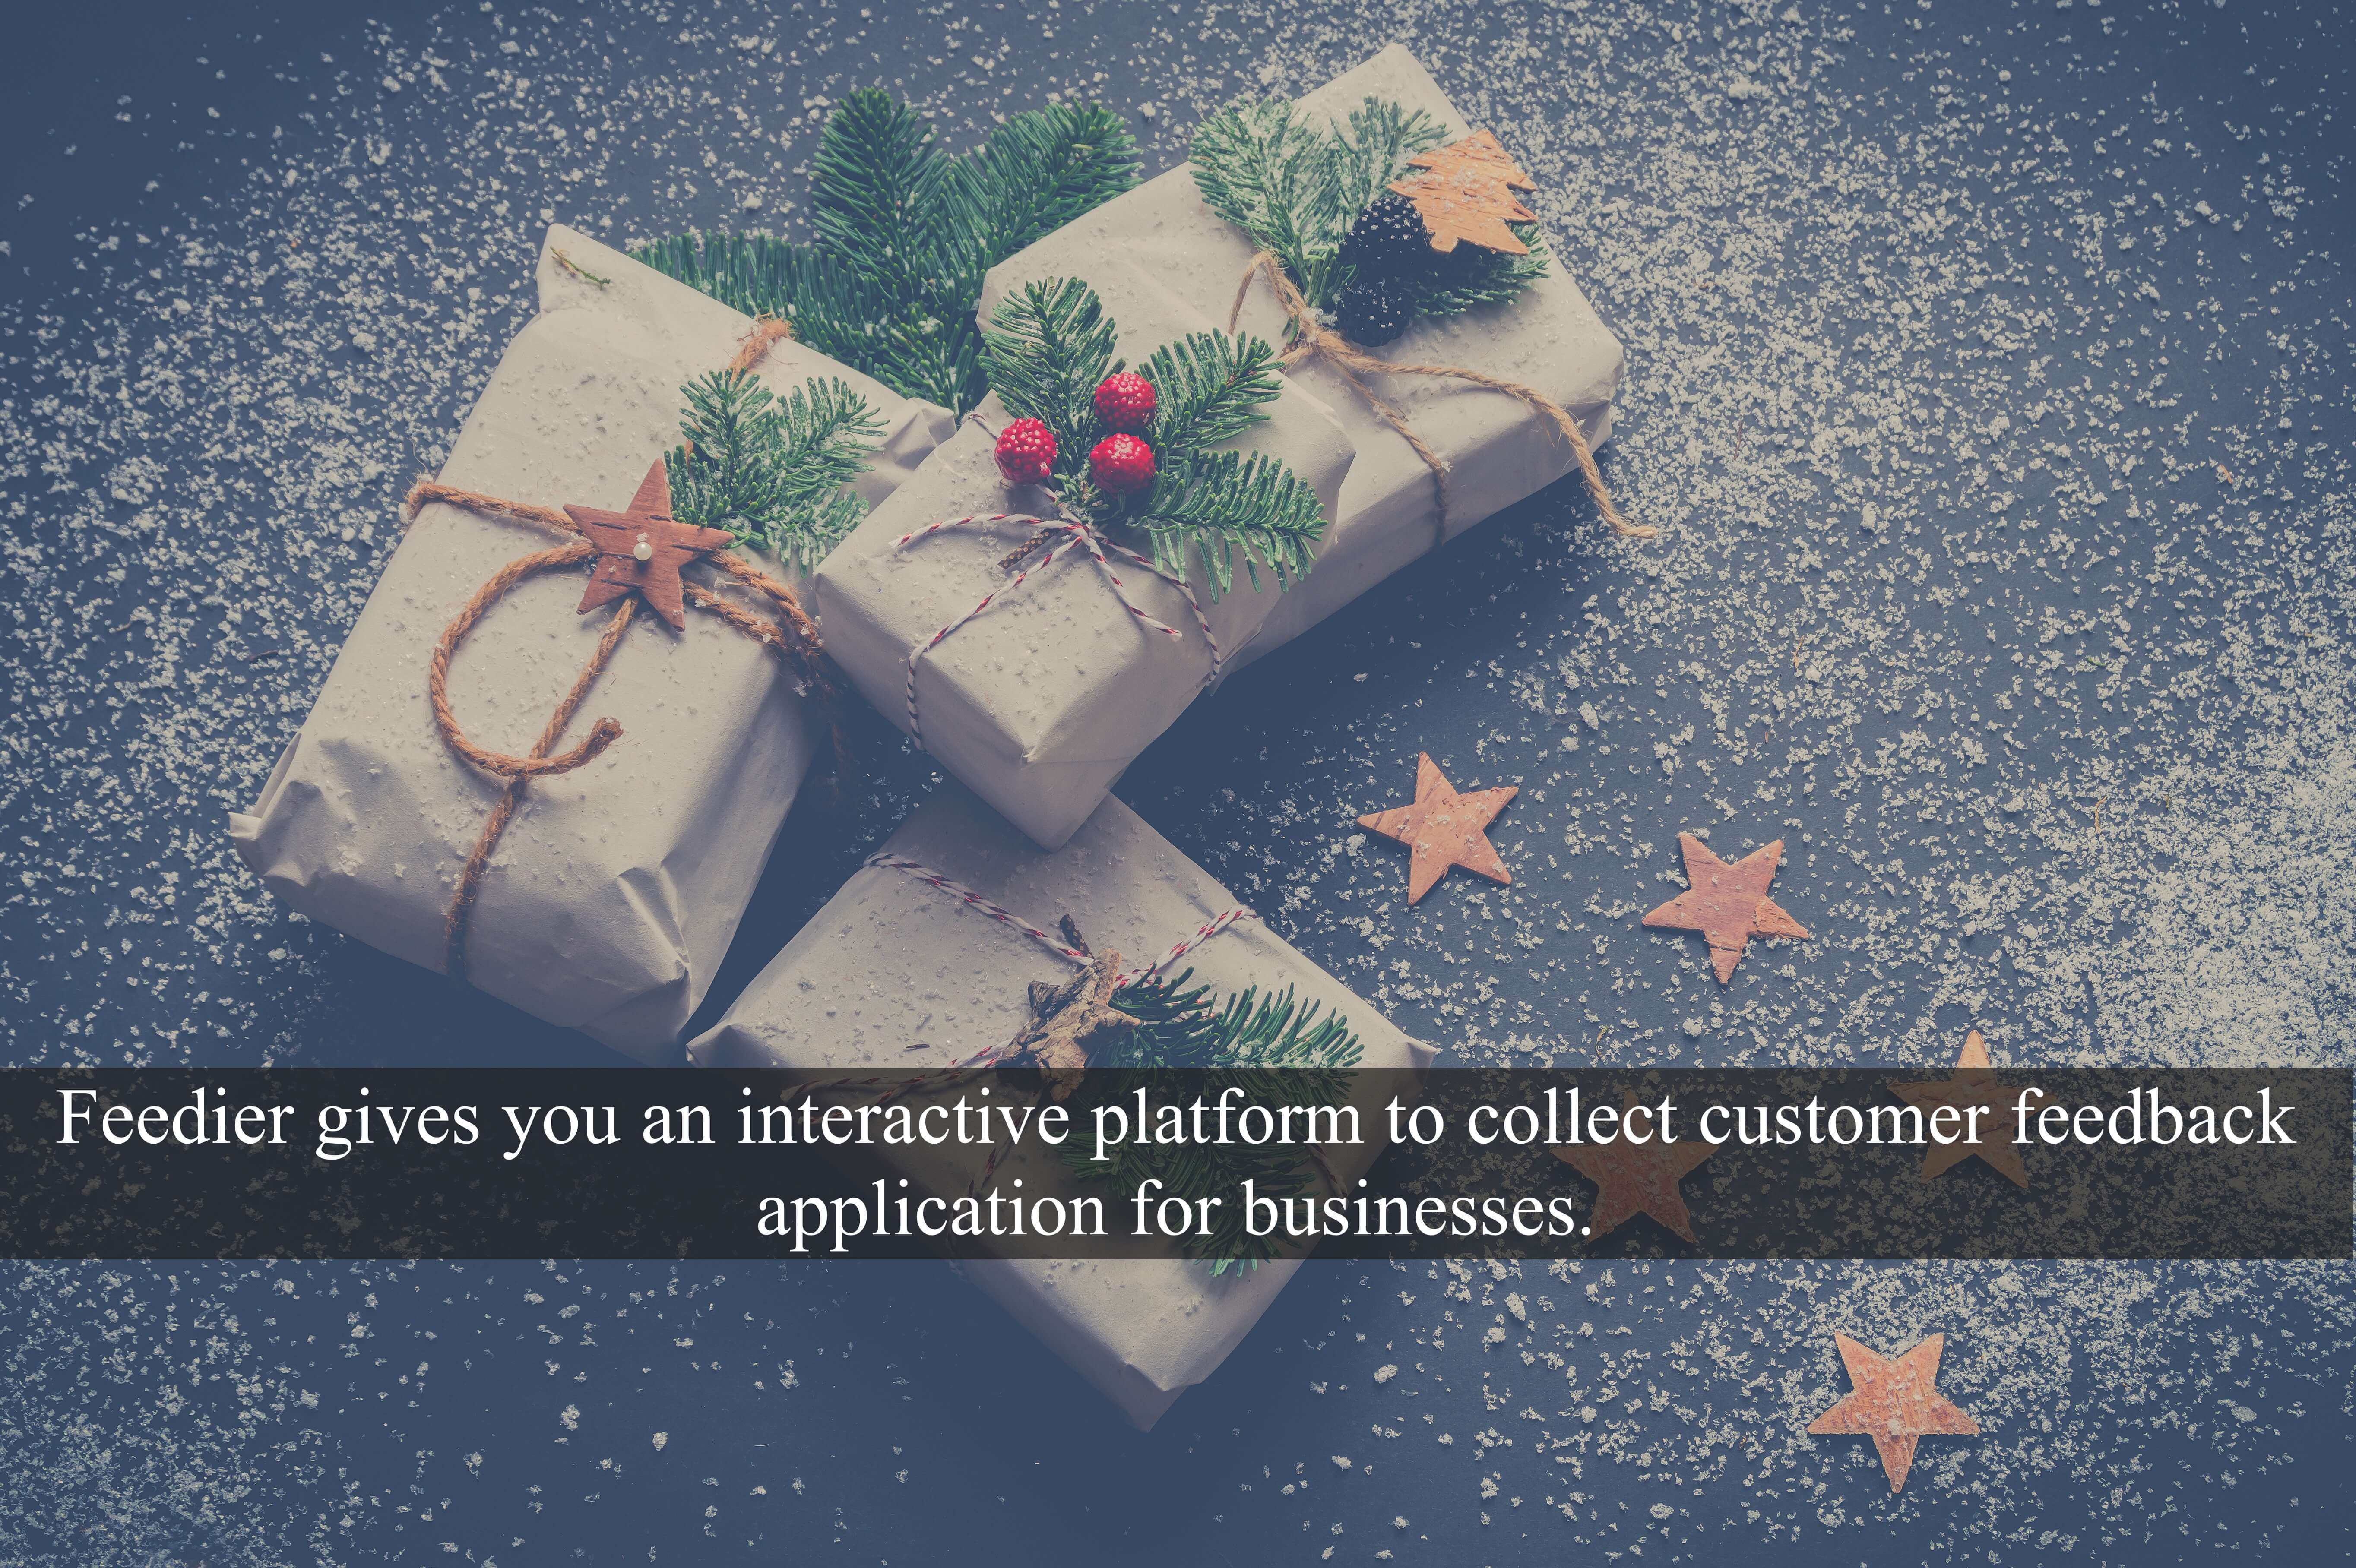 Feedier gives you an interactive platform to collect customer feedback application for businesses.